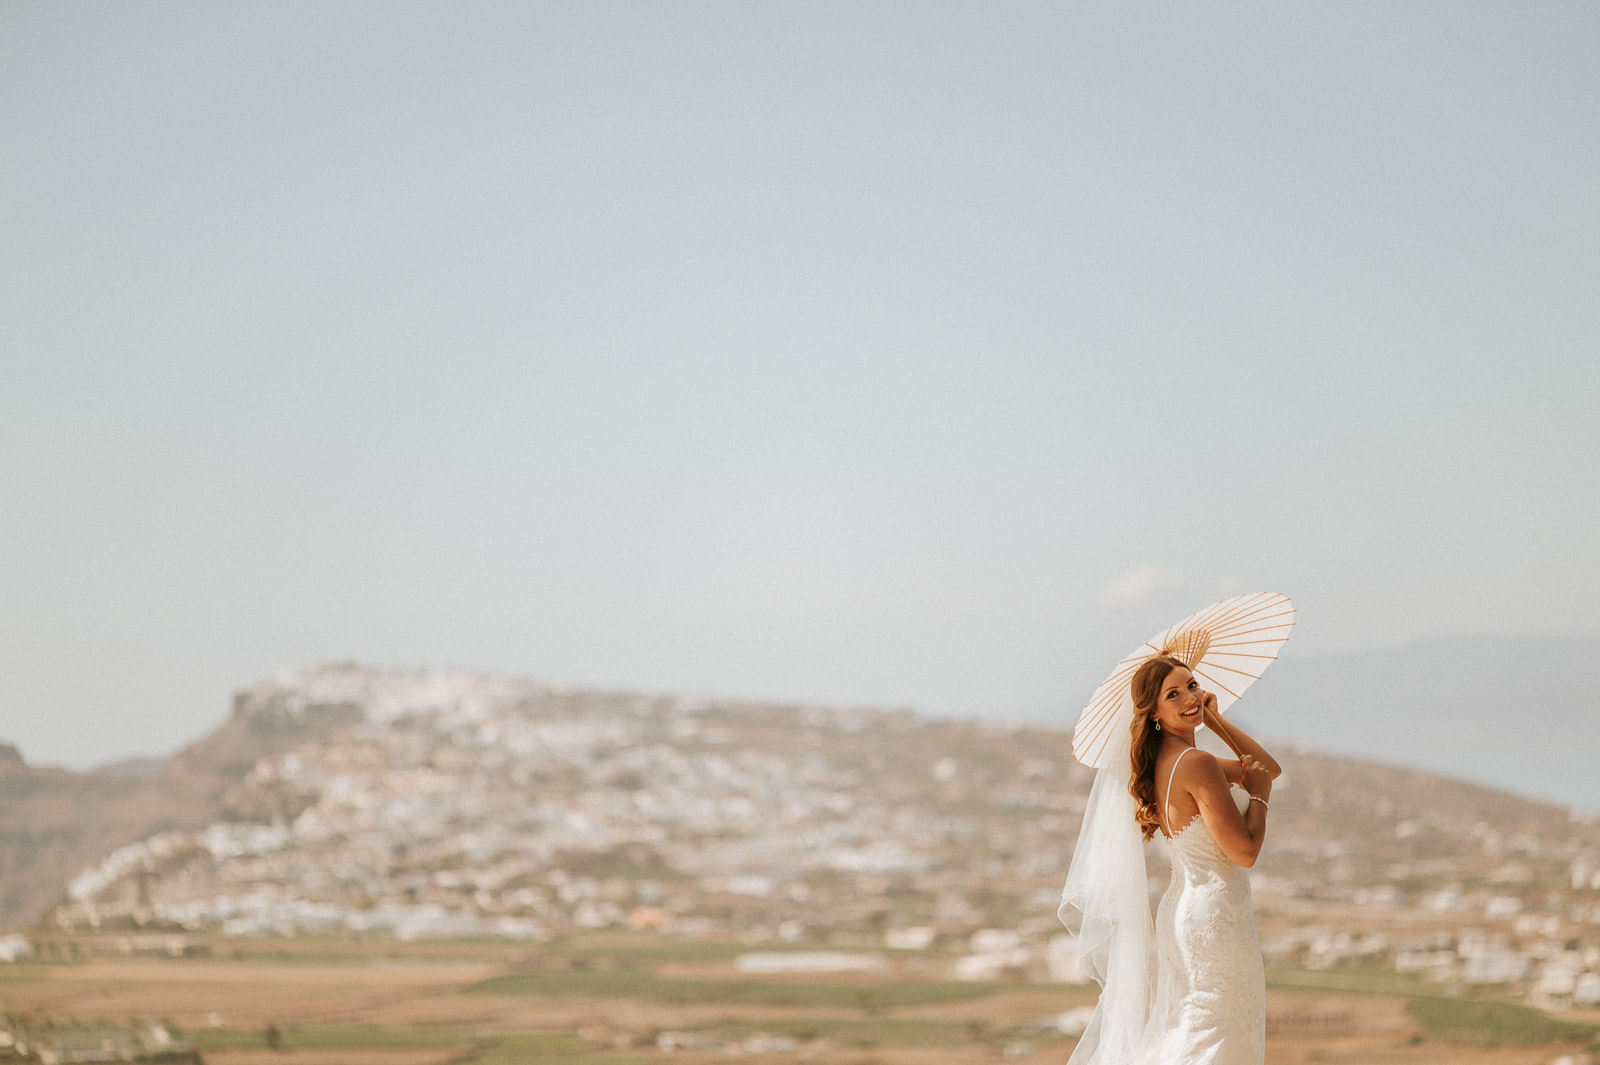 Santorini-Wedding-Photographer-Greece-Destination-Weddings-Mait-Juriado-M&J-Studios-035